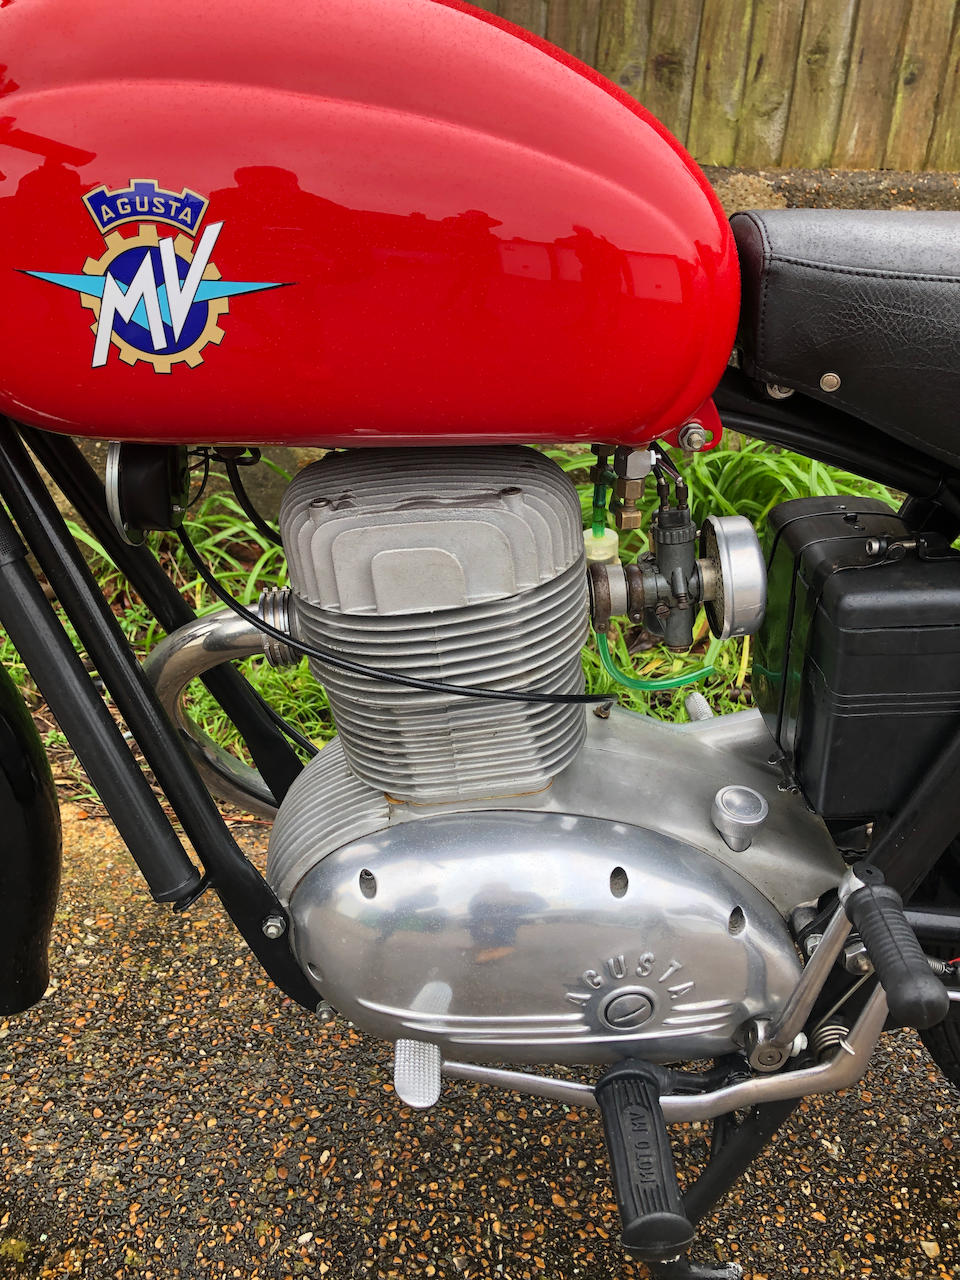 1954 MV Agusta 175cc CSTL Frame no. 405200/36 Engine no. 404500T